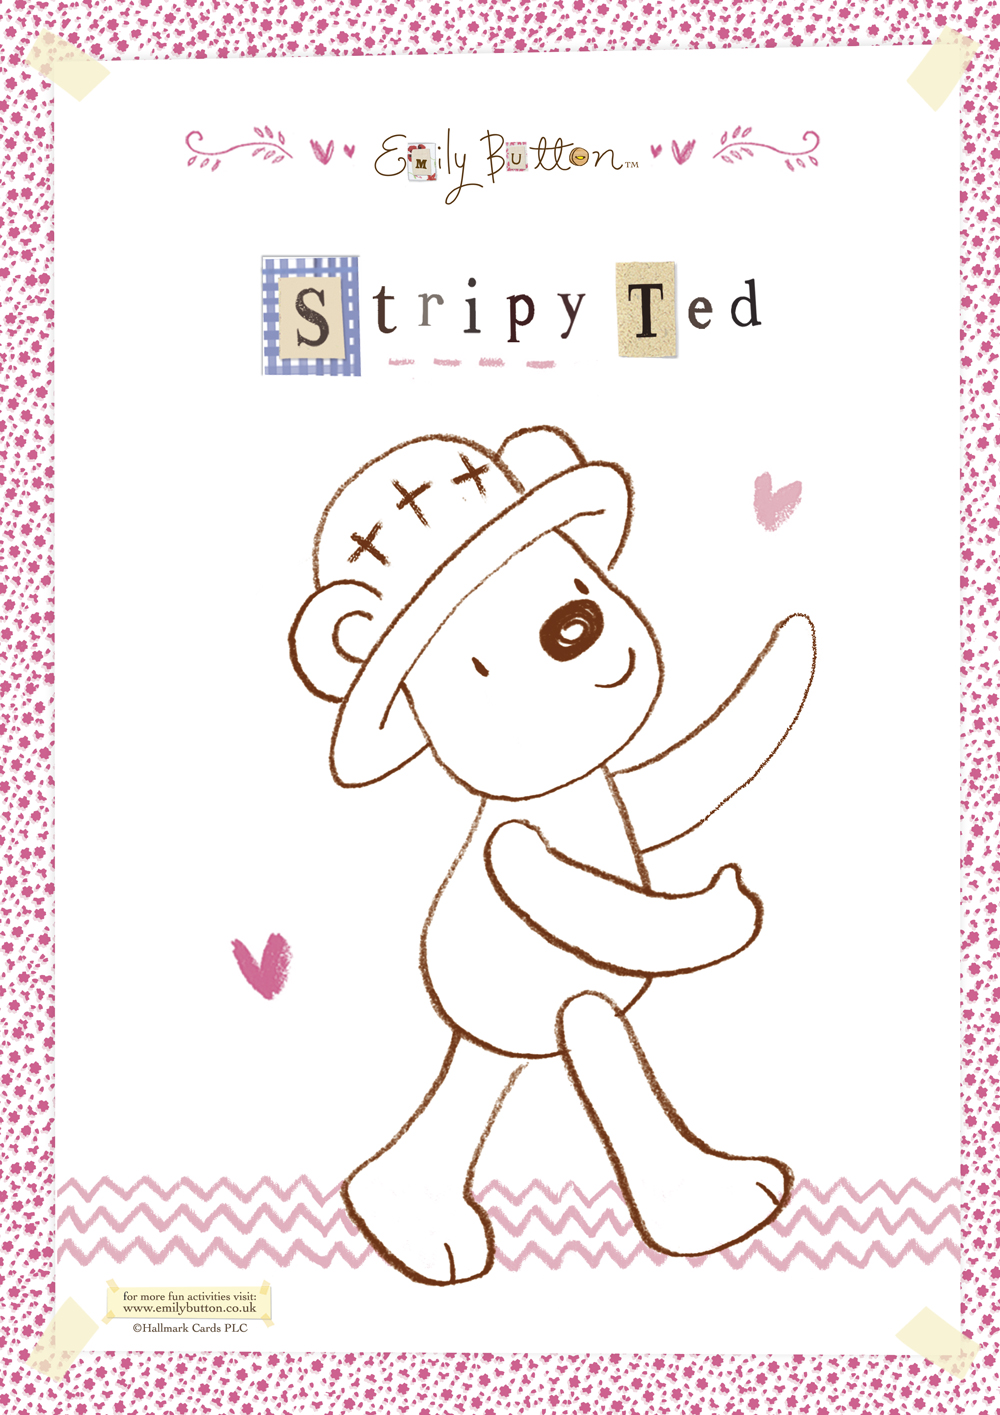 Stripy Ted Download the pdf (596kb)